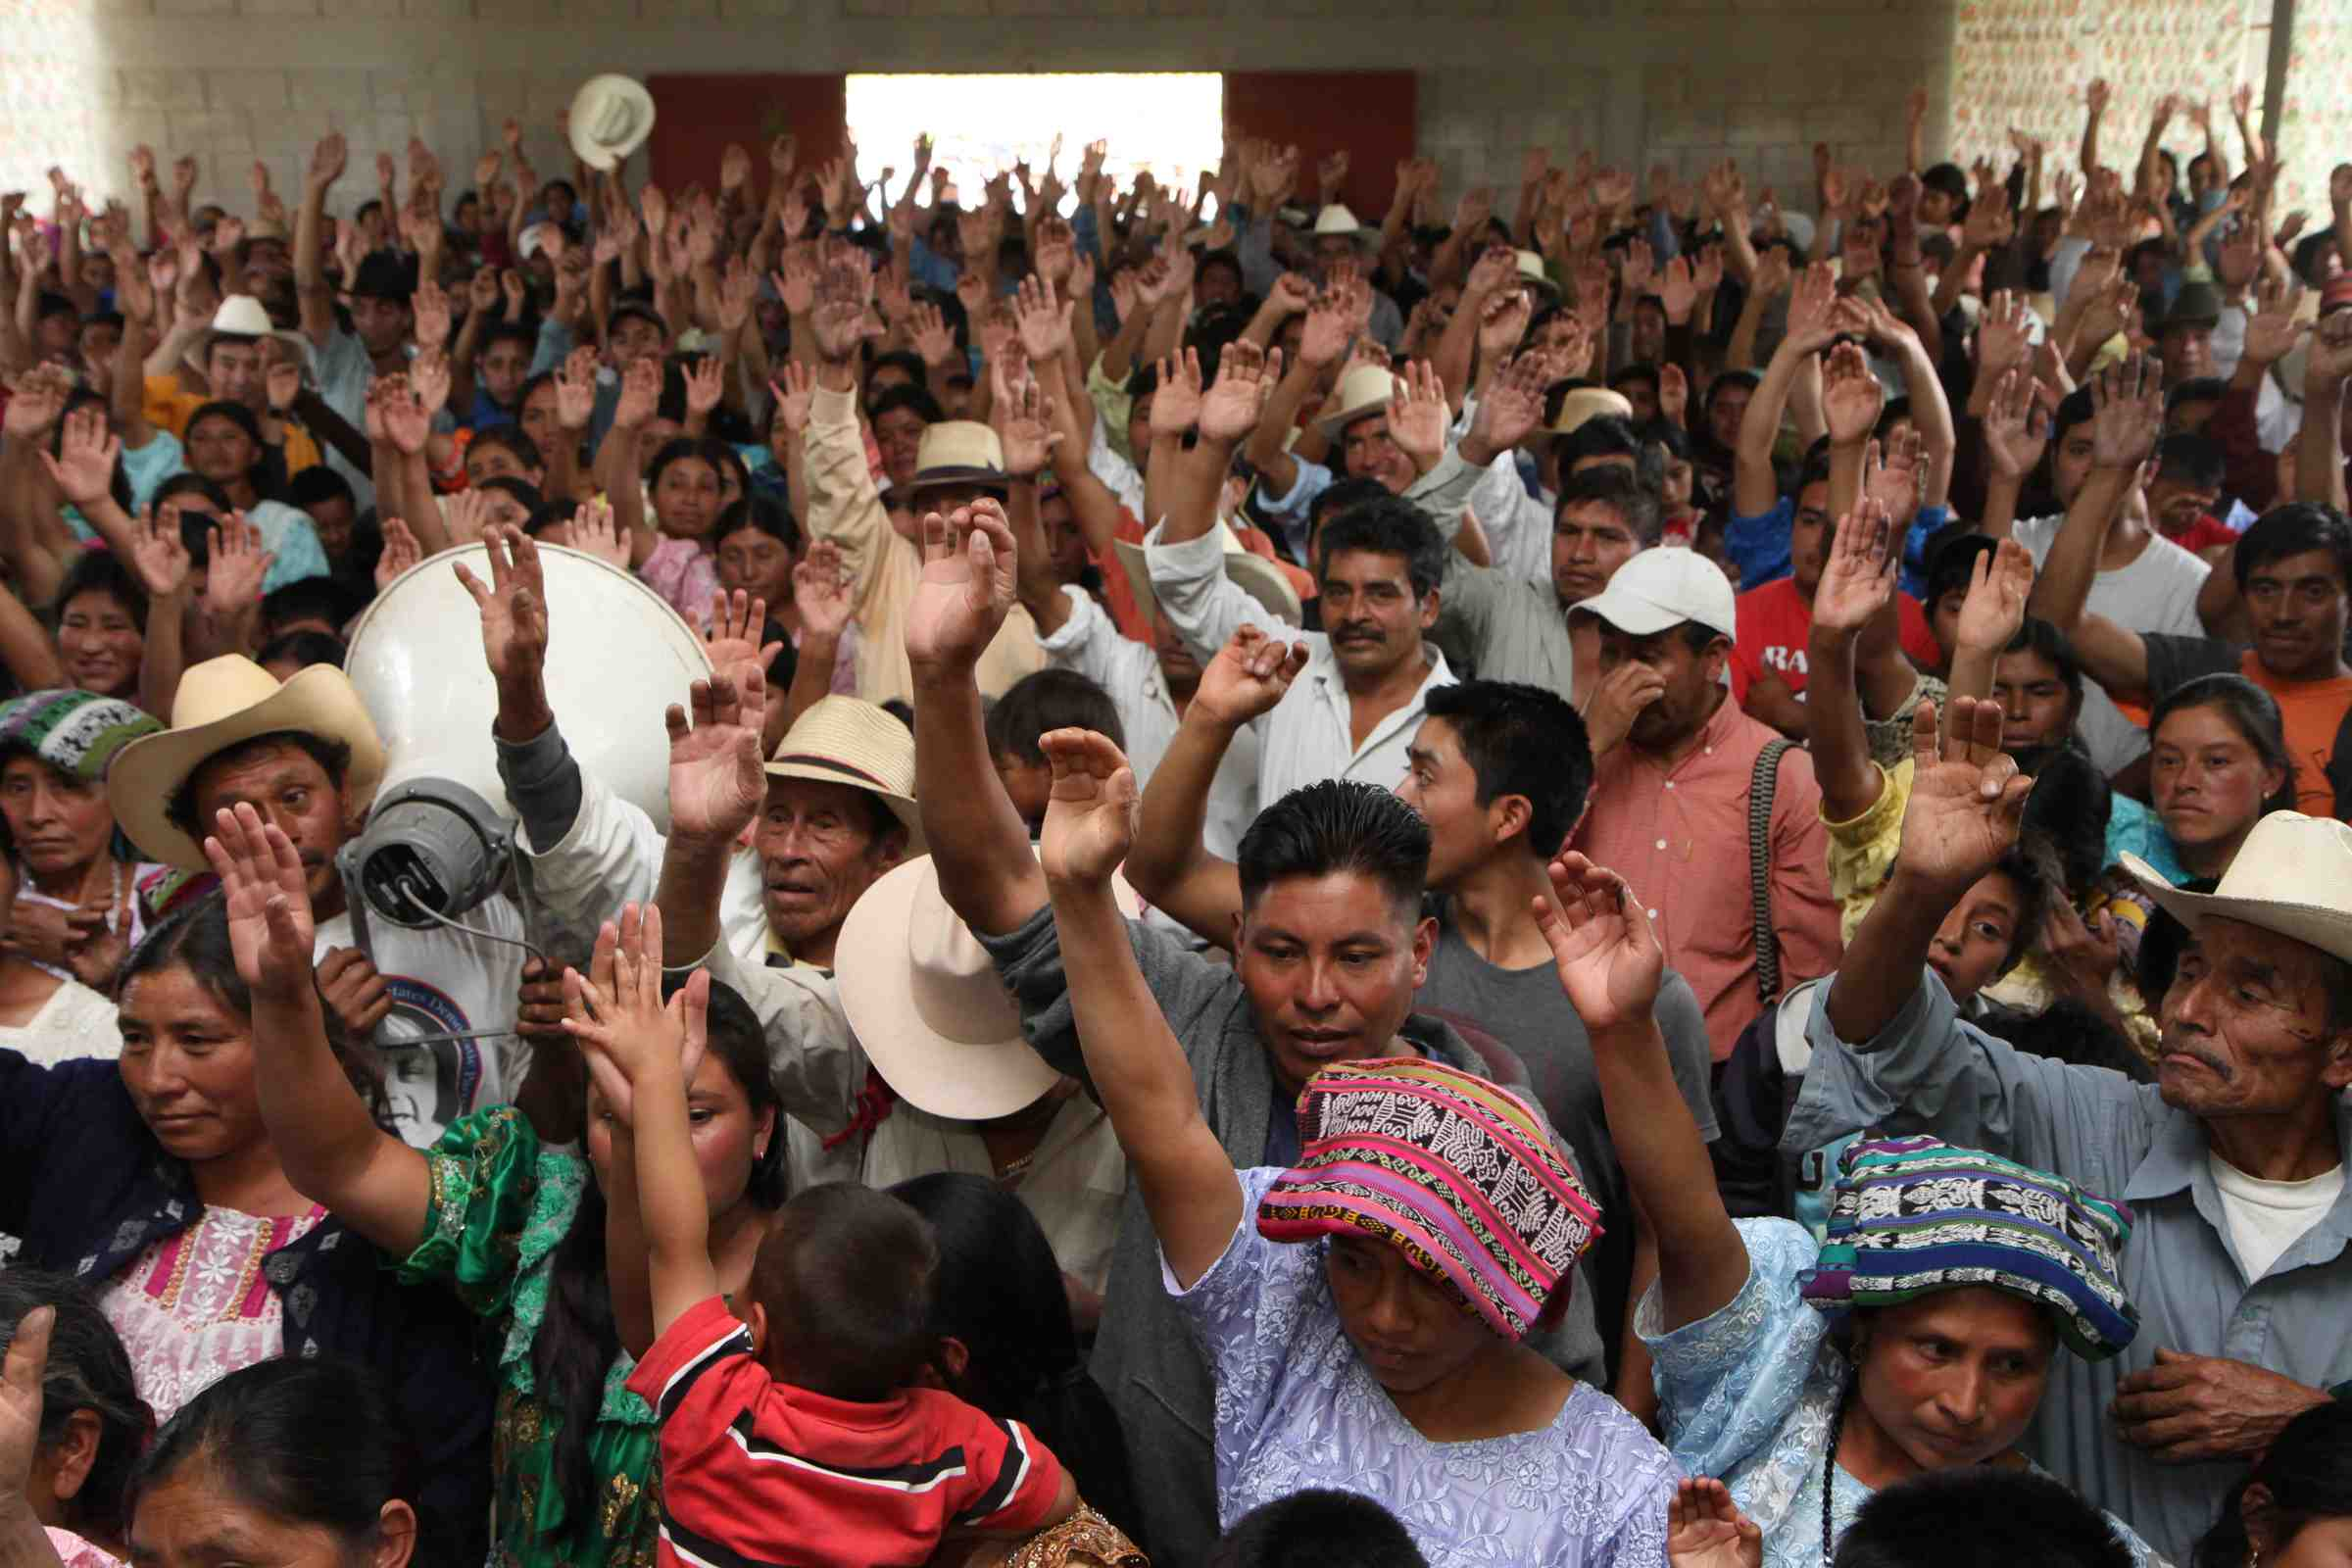 Residents of CantÛn Pajajxit I, II and III vote during the community consultation on the exploitation of natural resources. On a historic day, residents from the municipality of Santa Cruz del QuichÈ - one of Guatemala's most important hubs and the birthplace of the Maya K'iche' people - unanimously rejected the exploitation of natural goods and resources, in particular through mining and hydroelectric activities. Santa Cruz, Quiche, Guatemala. October 22, 2010.